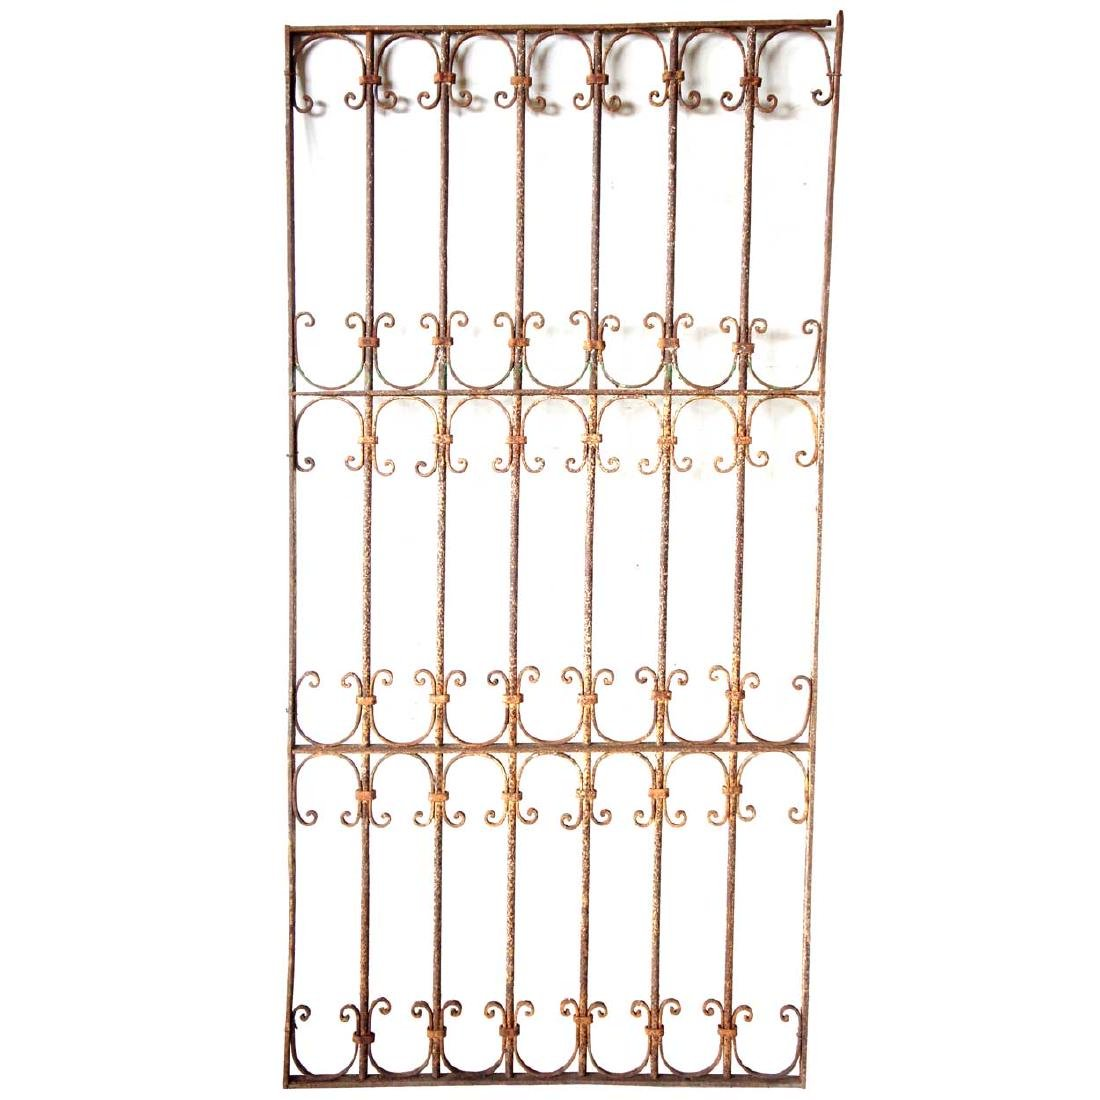 2 Spanish Wrought Iron Window Grilles - 5